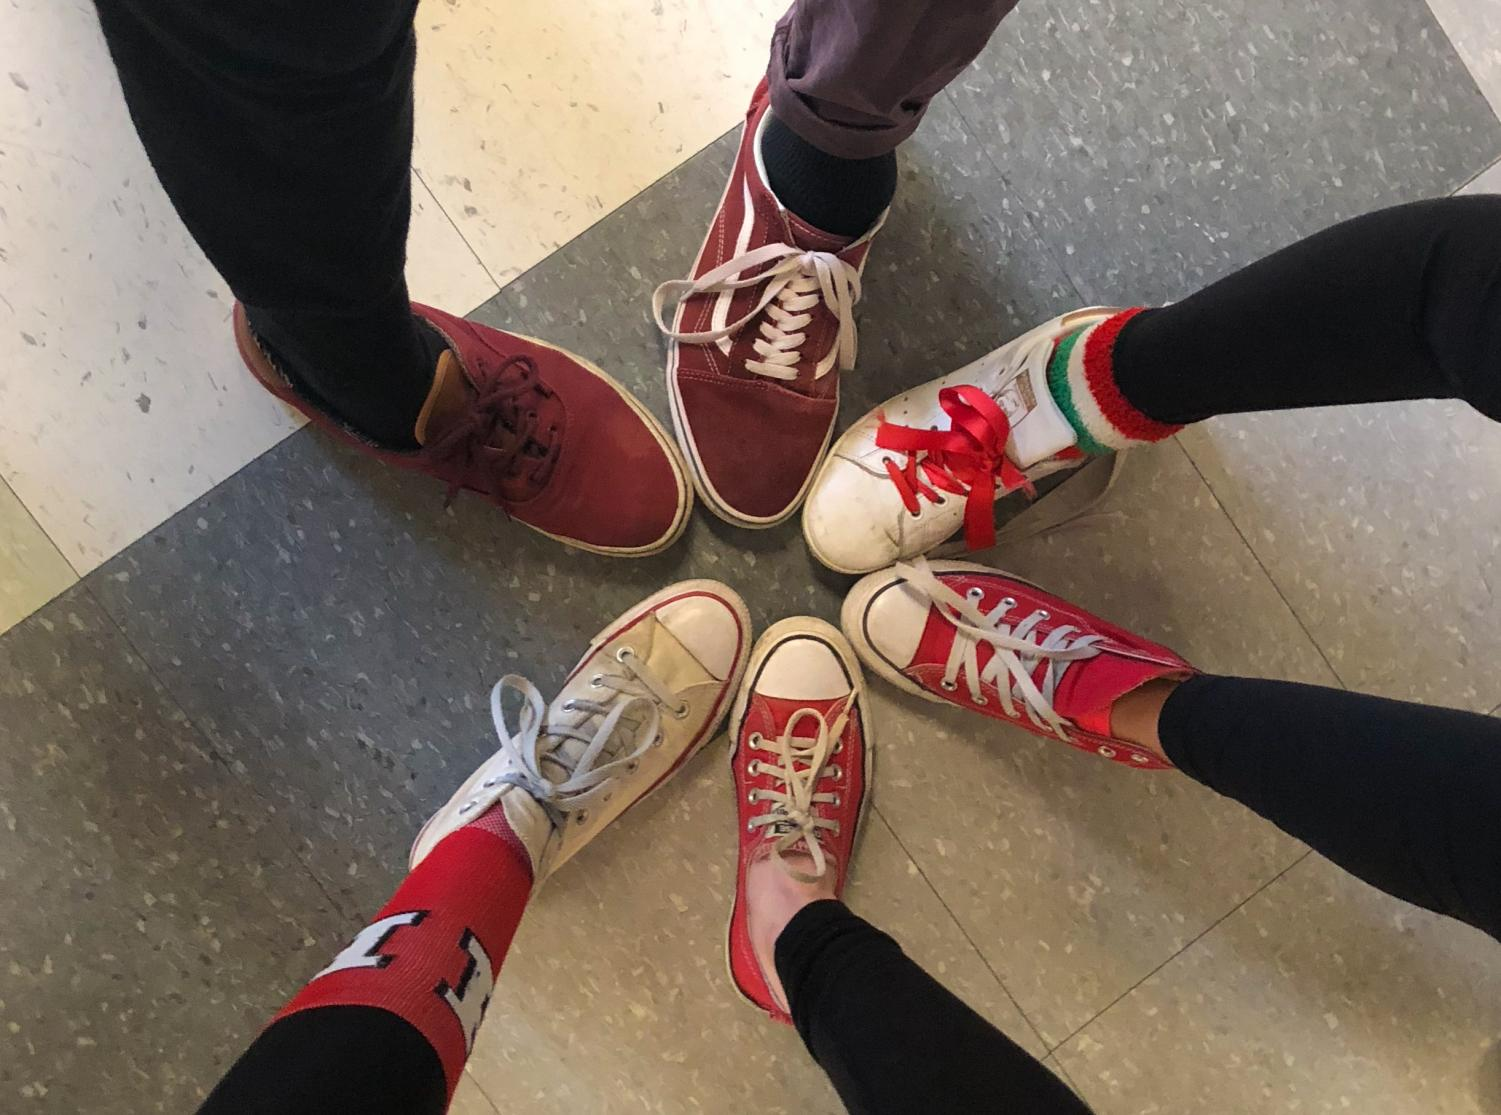 Students Harry Hull, Nick DeSilva, Caroline Johannes, Beth Lane, Avery O'Connor and Claire Haney show off their Hingham-inspired footwear choices.